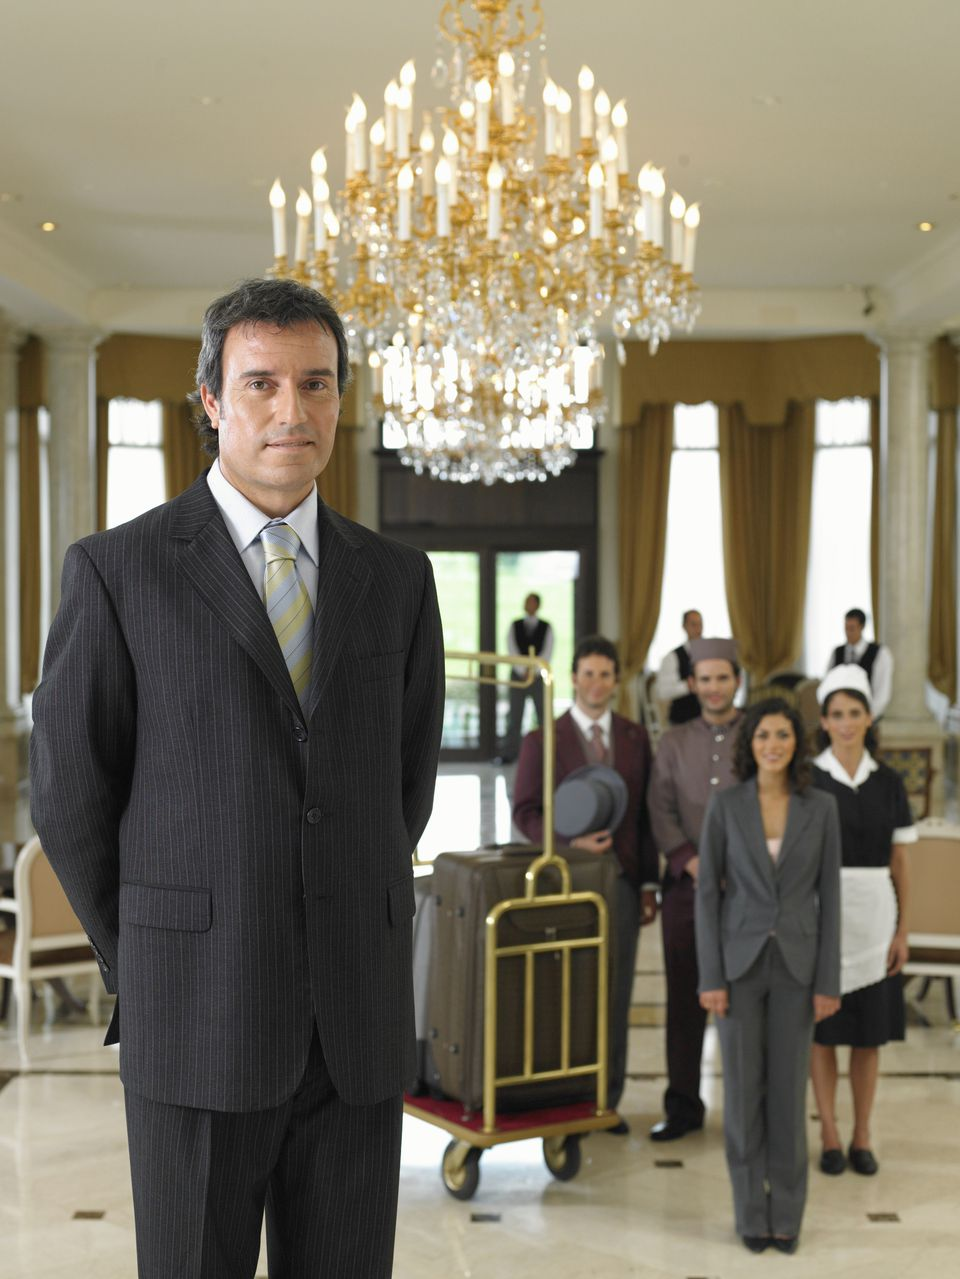 Hotel personnel at checkin